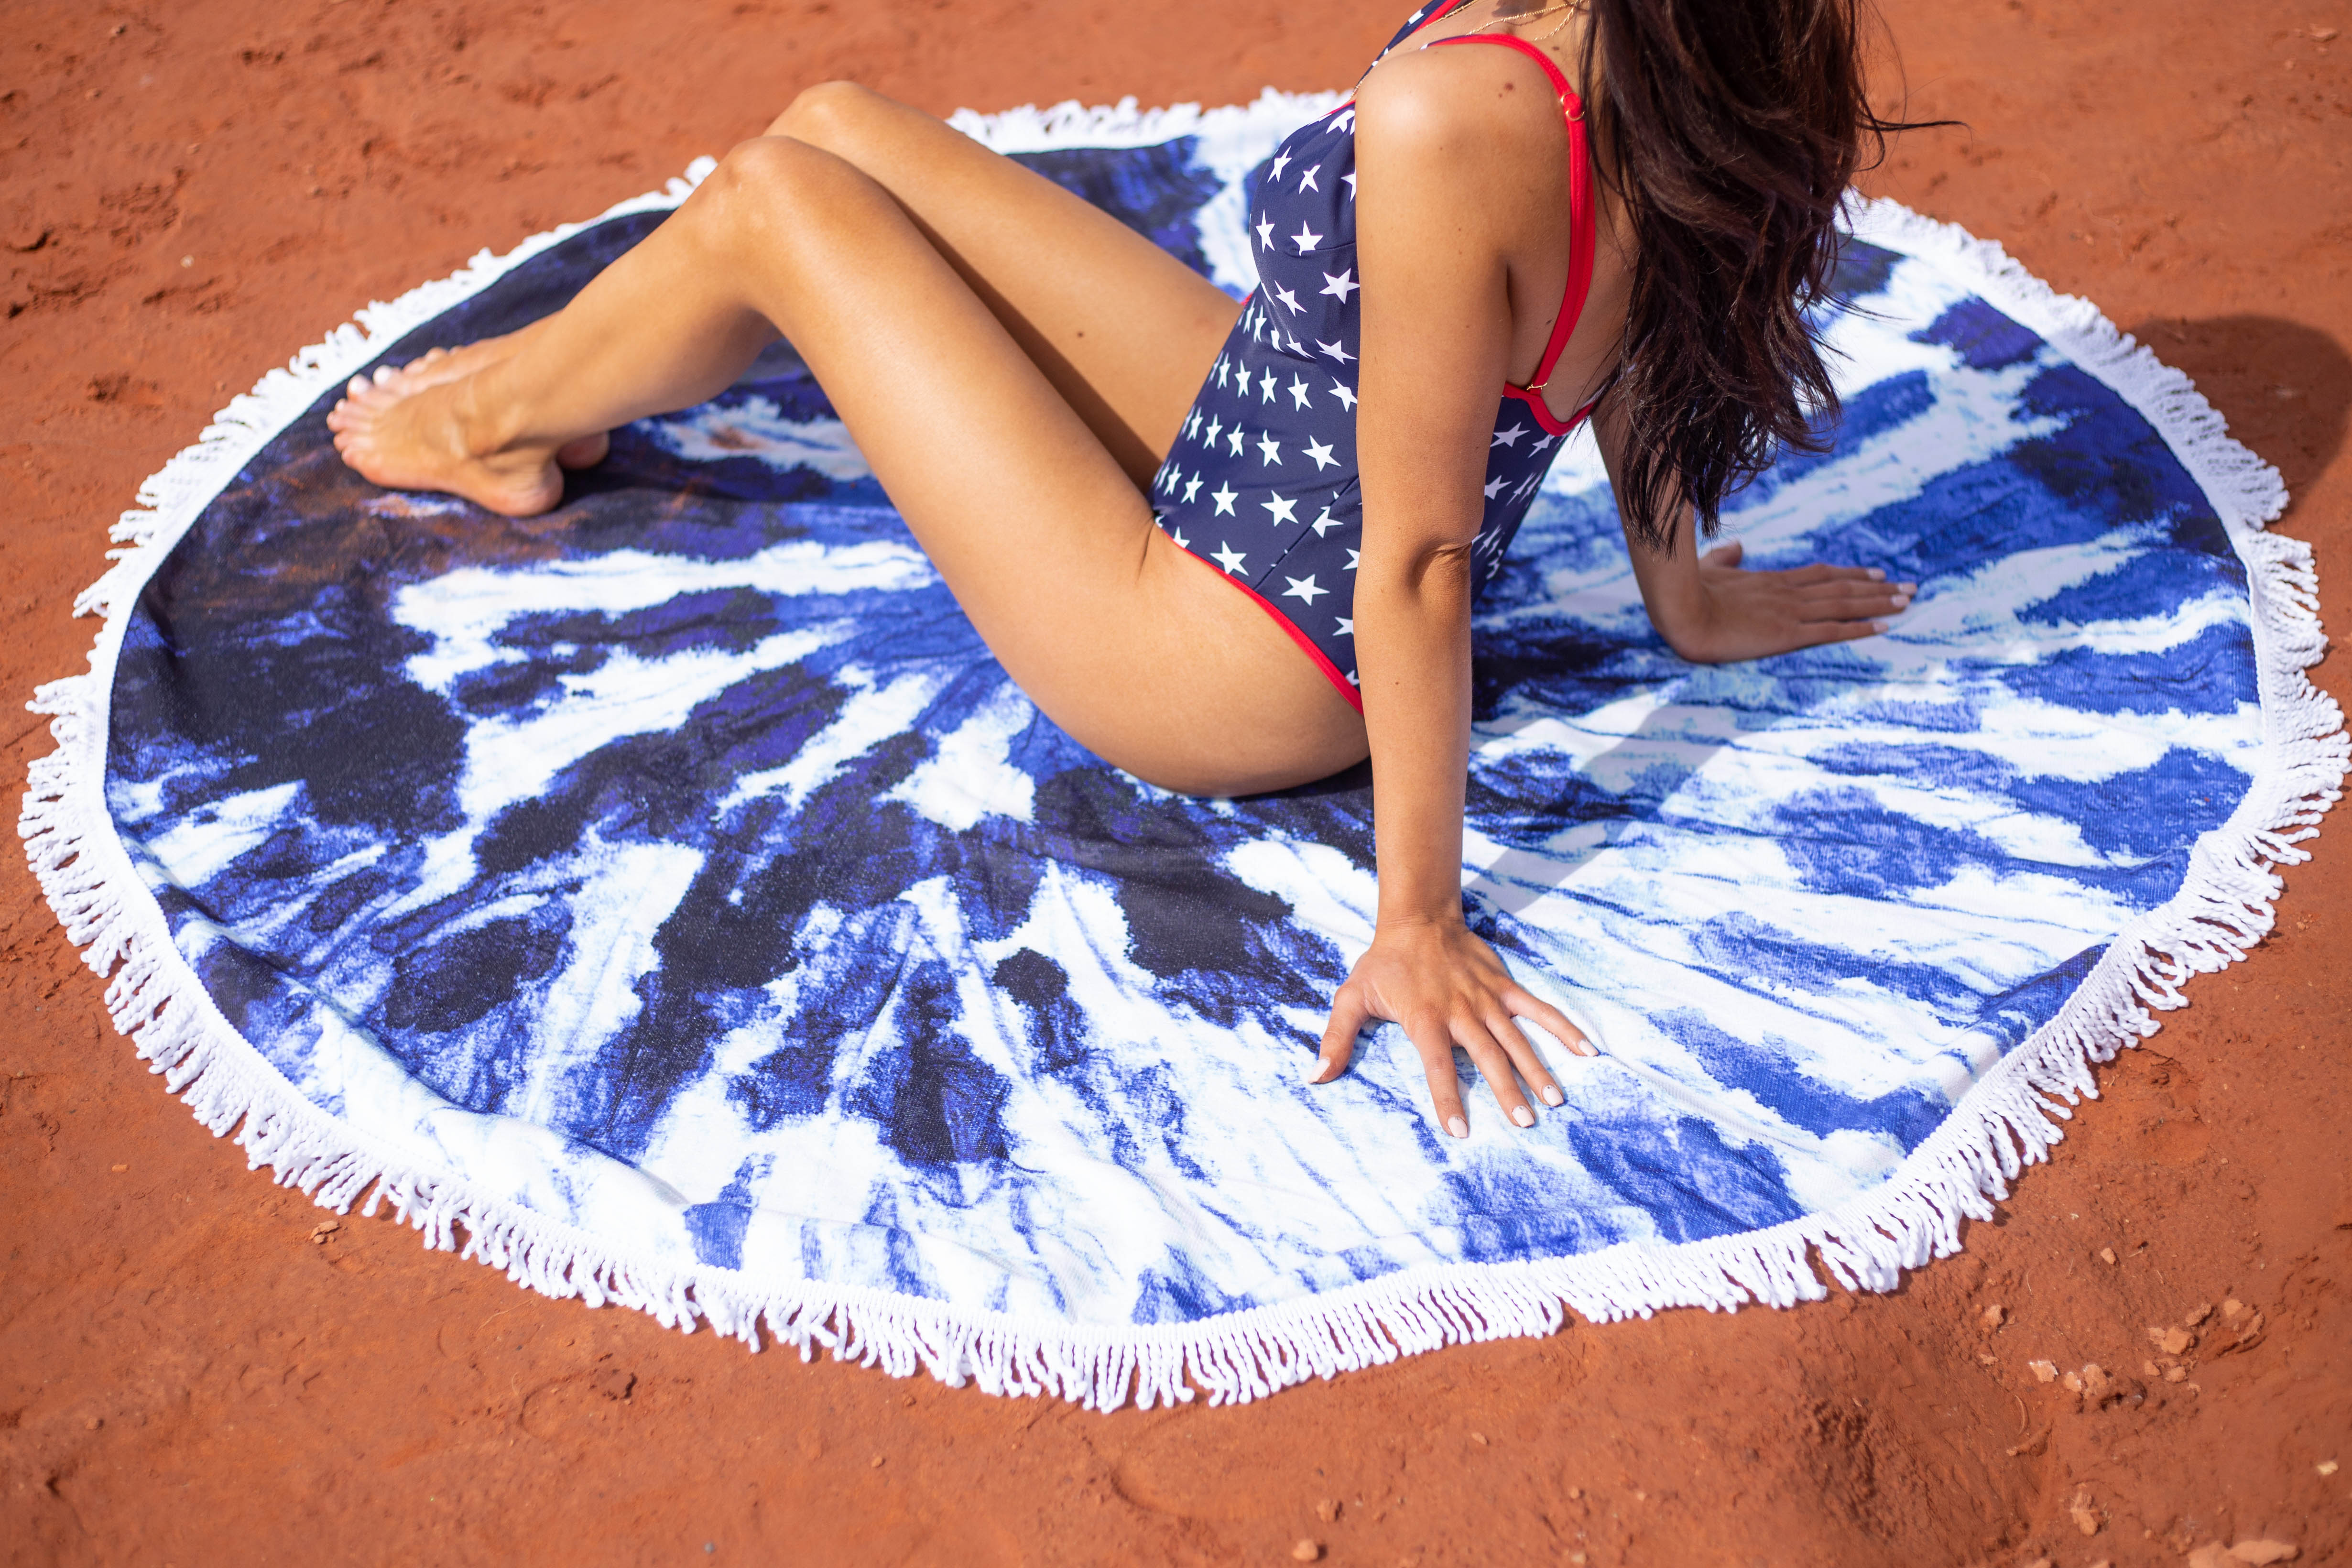 Royal Blue Tie Dye Rounded Beach Towel with Fringe Details